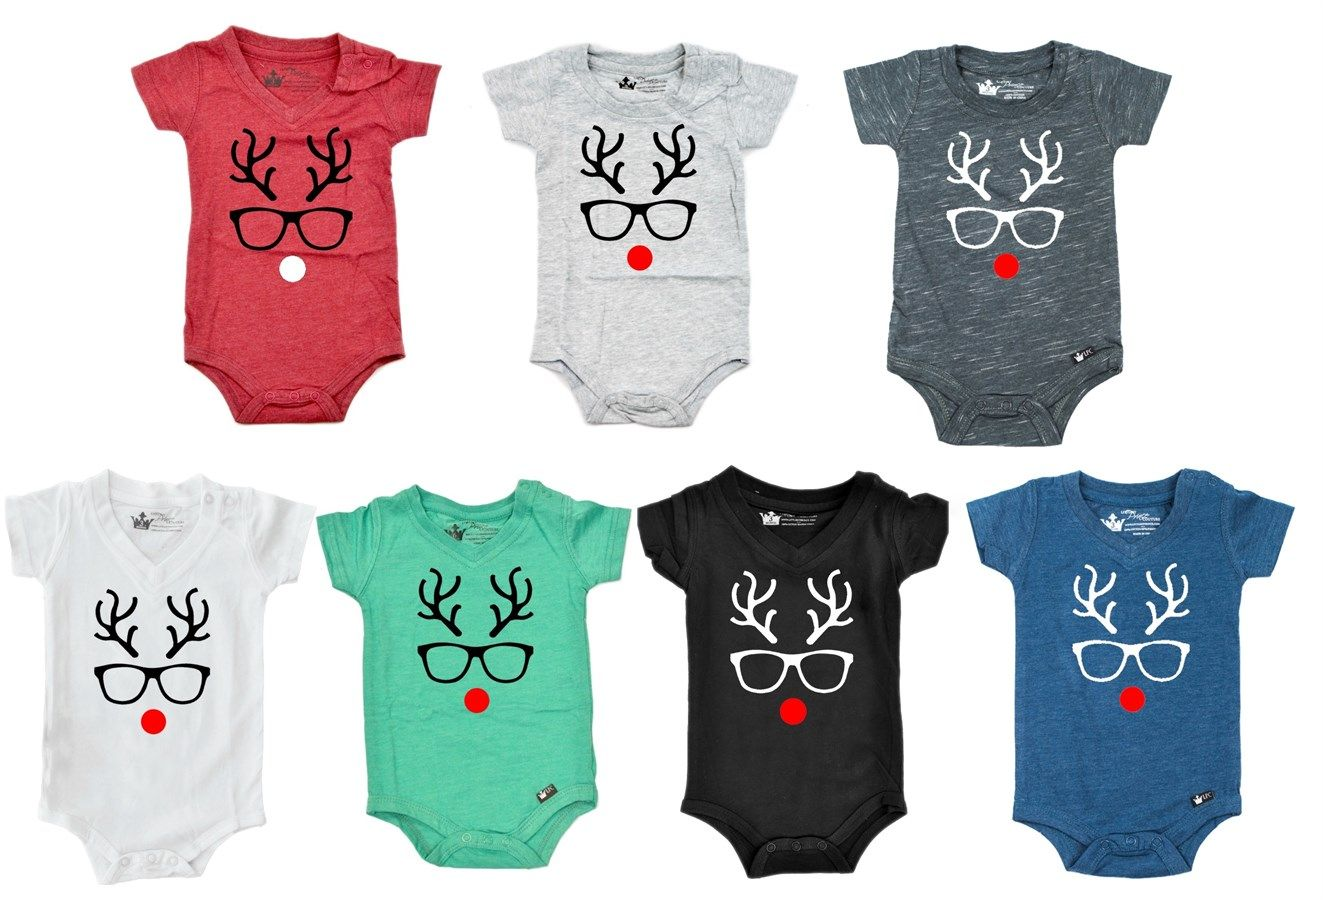 Jolly Christmas Shirts & Onesies | 4 Designs! | Jane